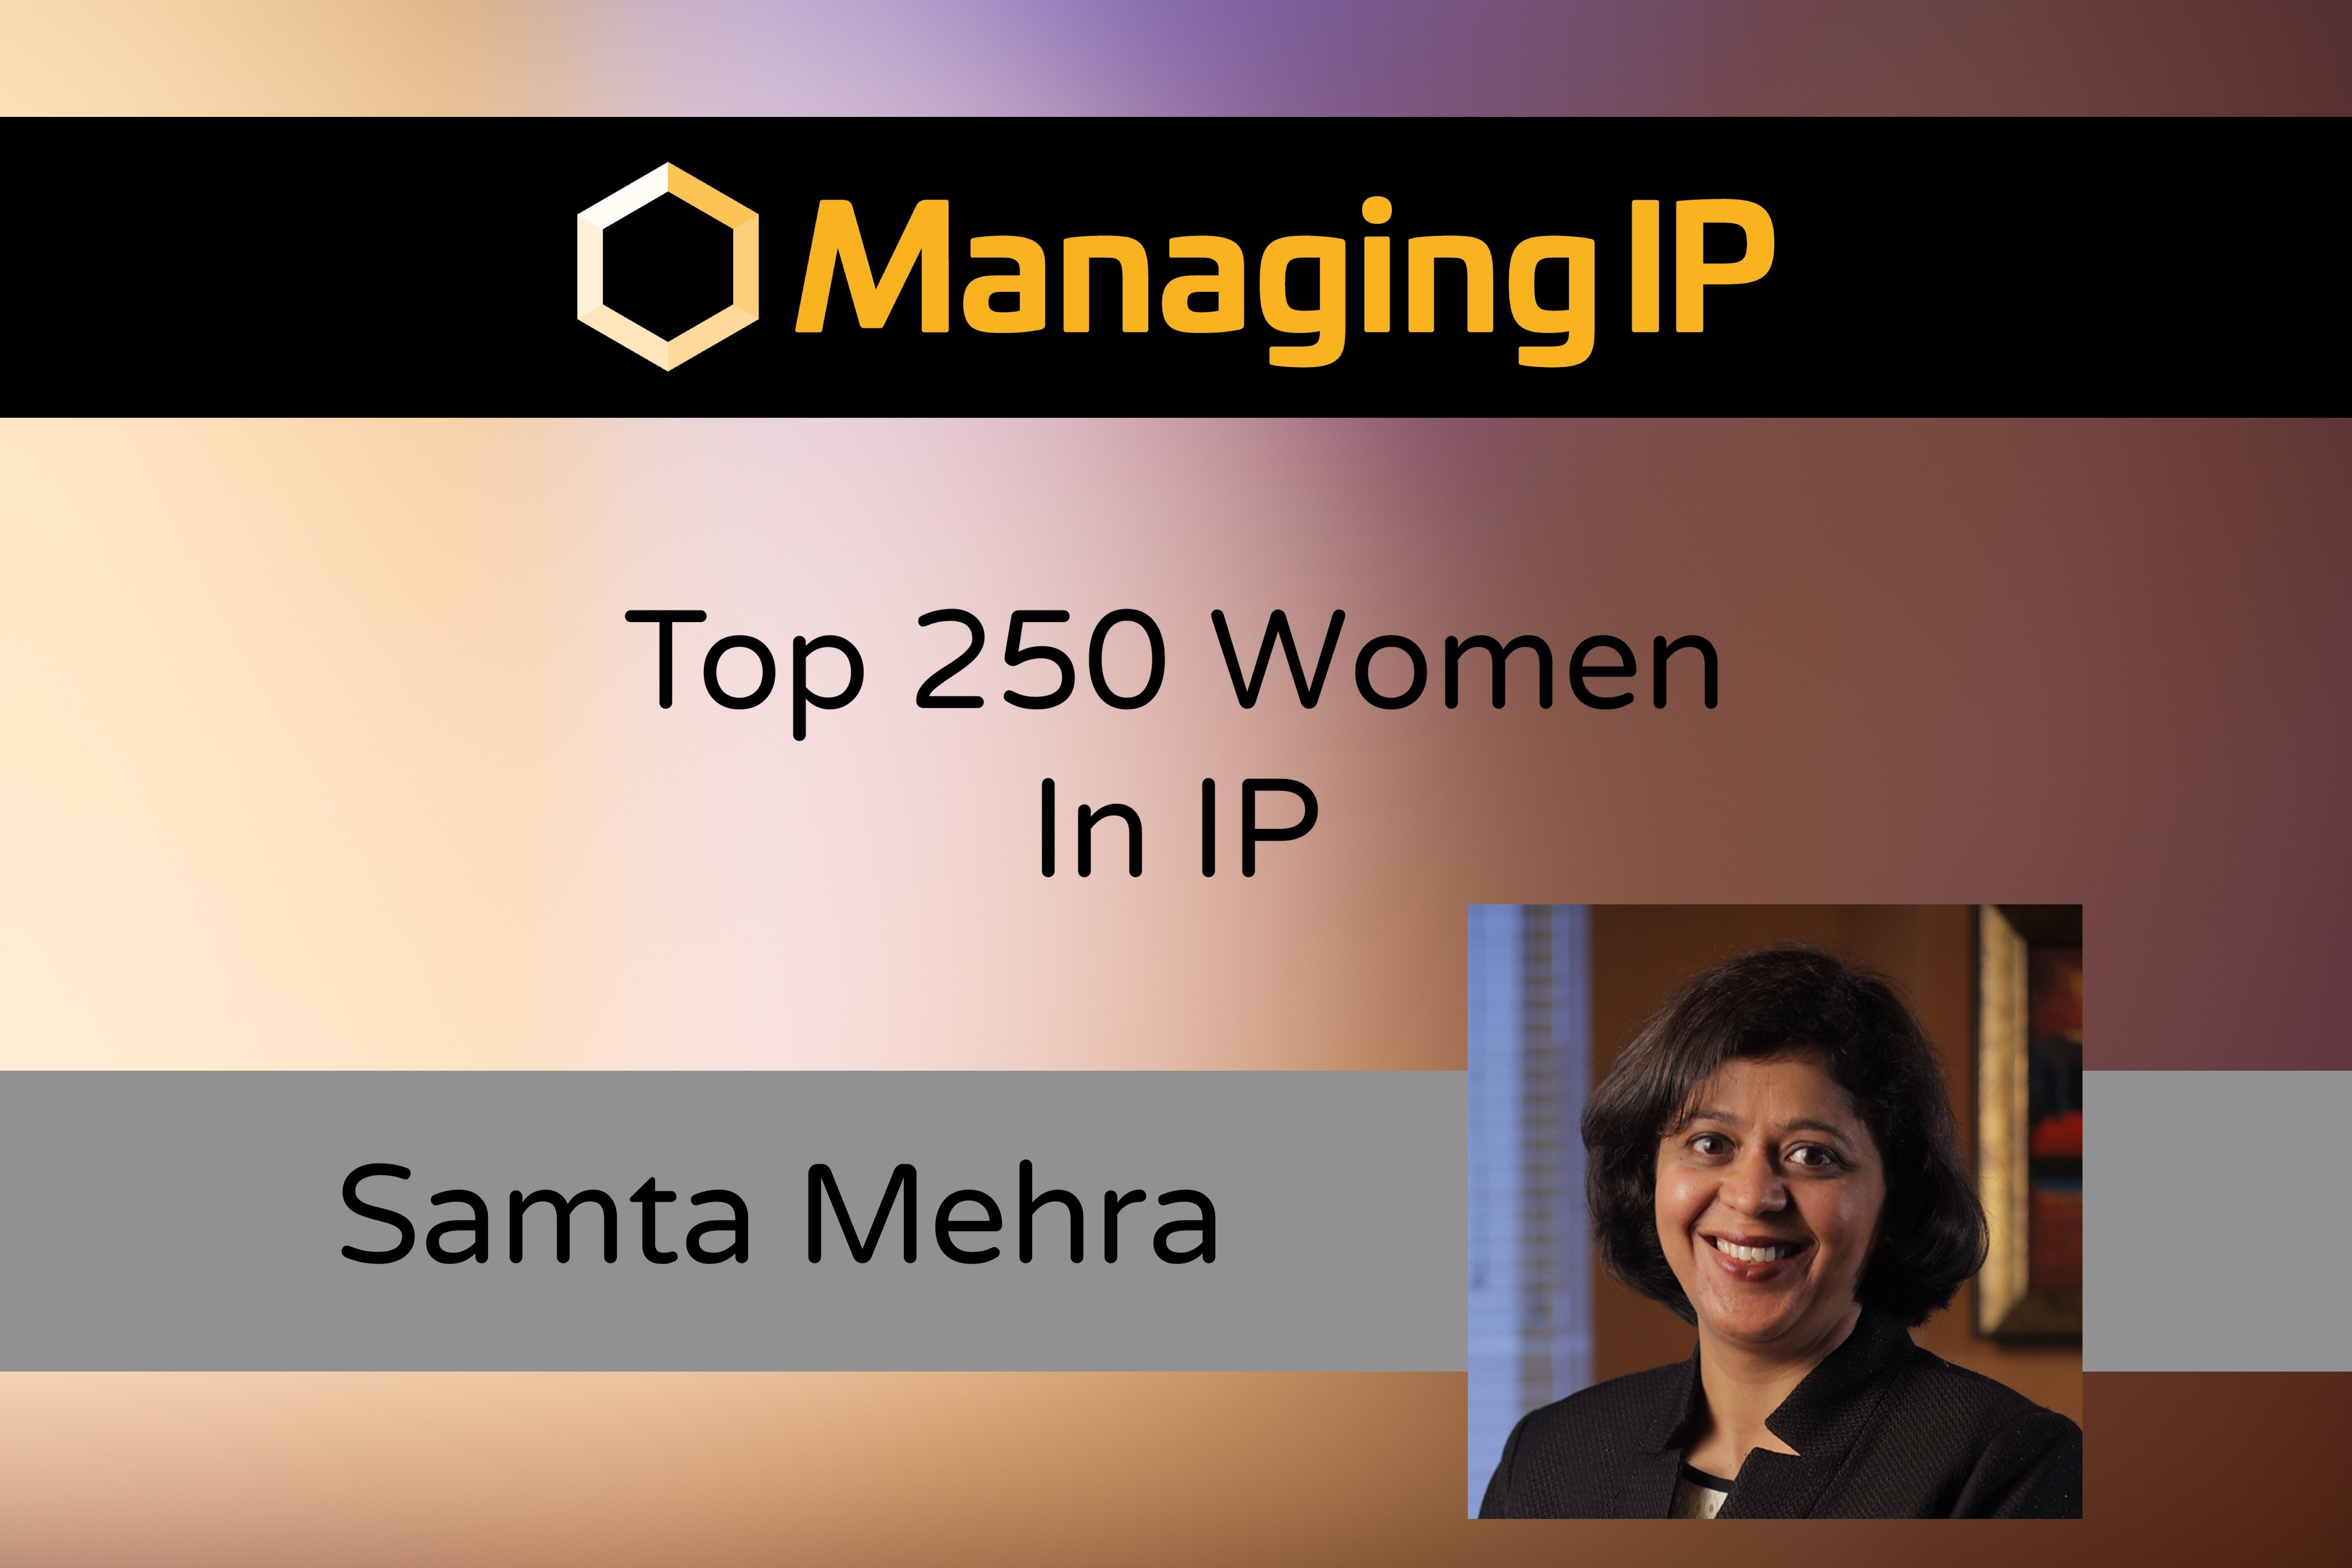 Top 250 Women In IP